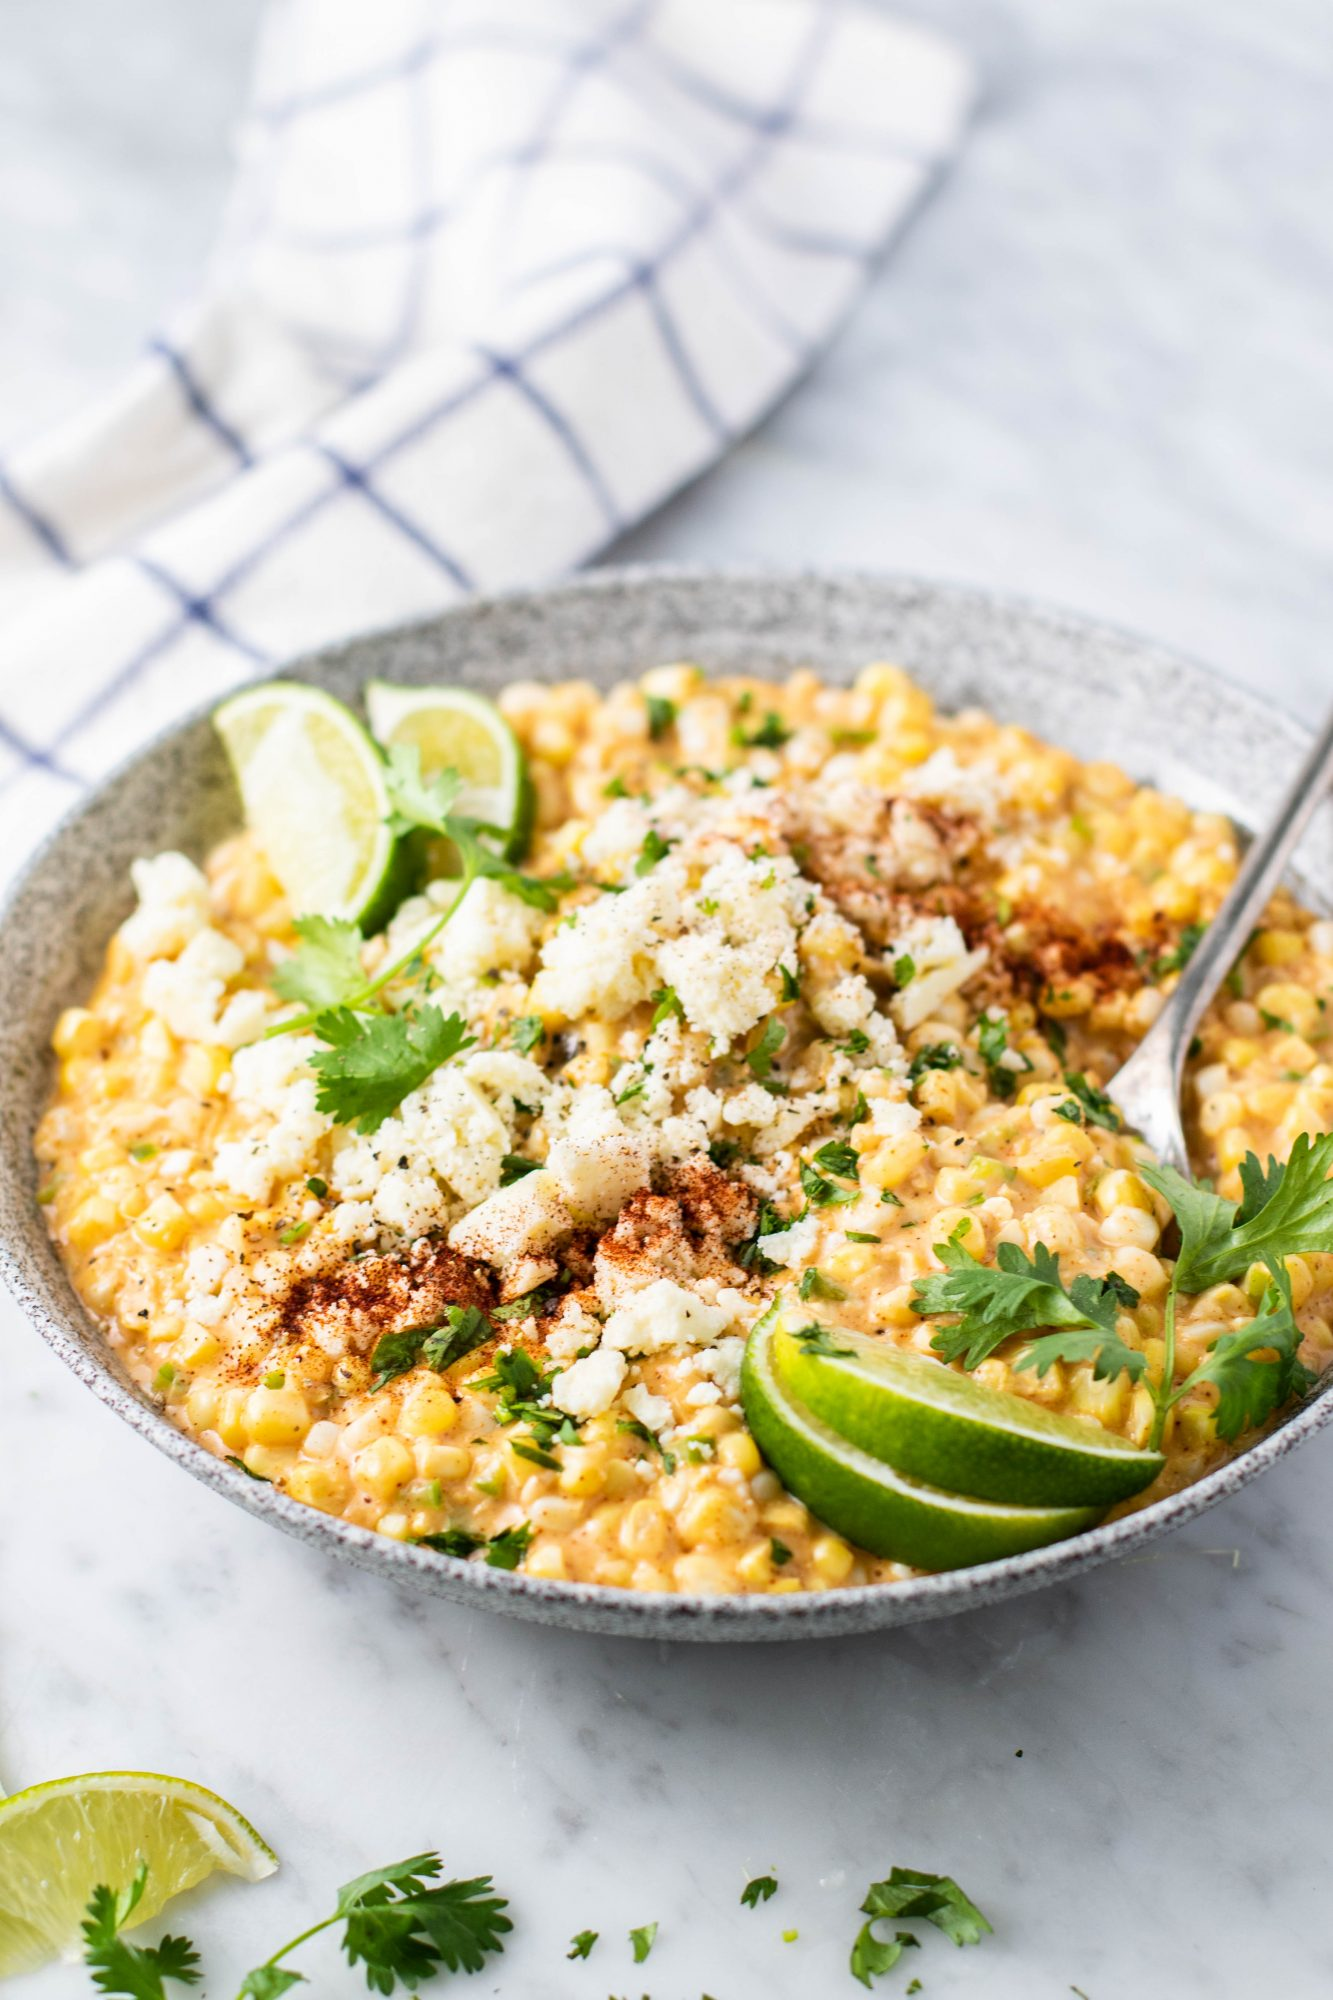 corn made with cotija, spices, jalapeño, and cilantro